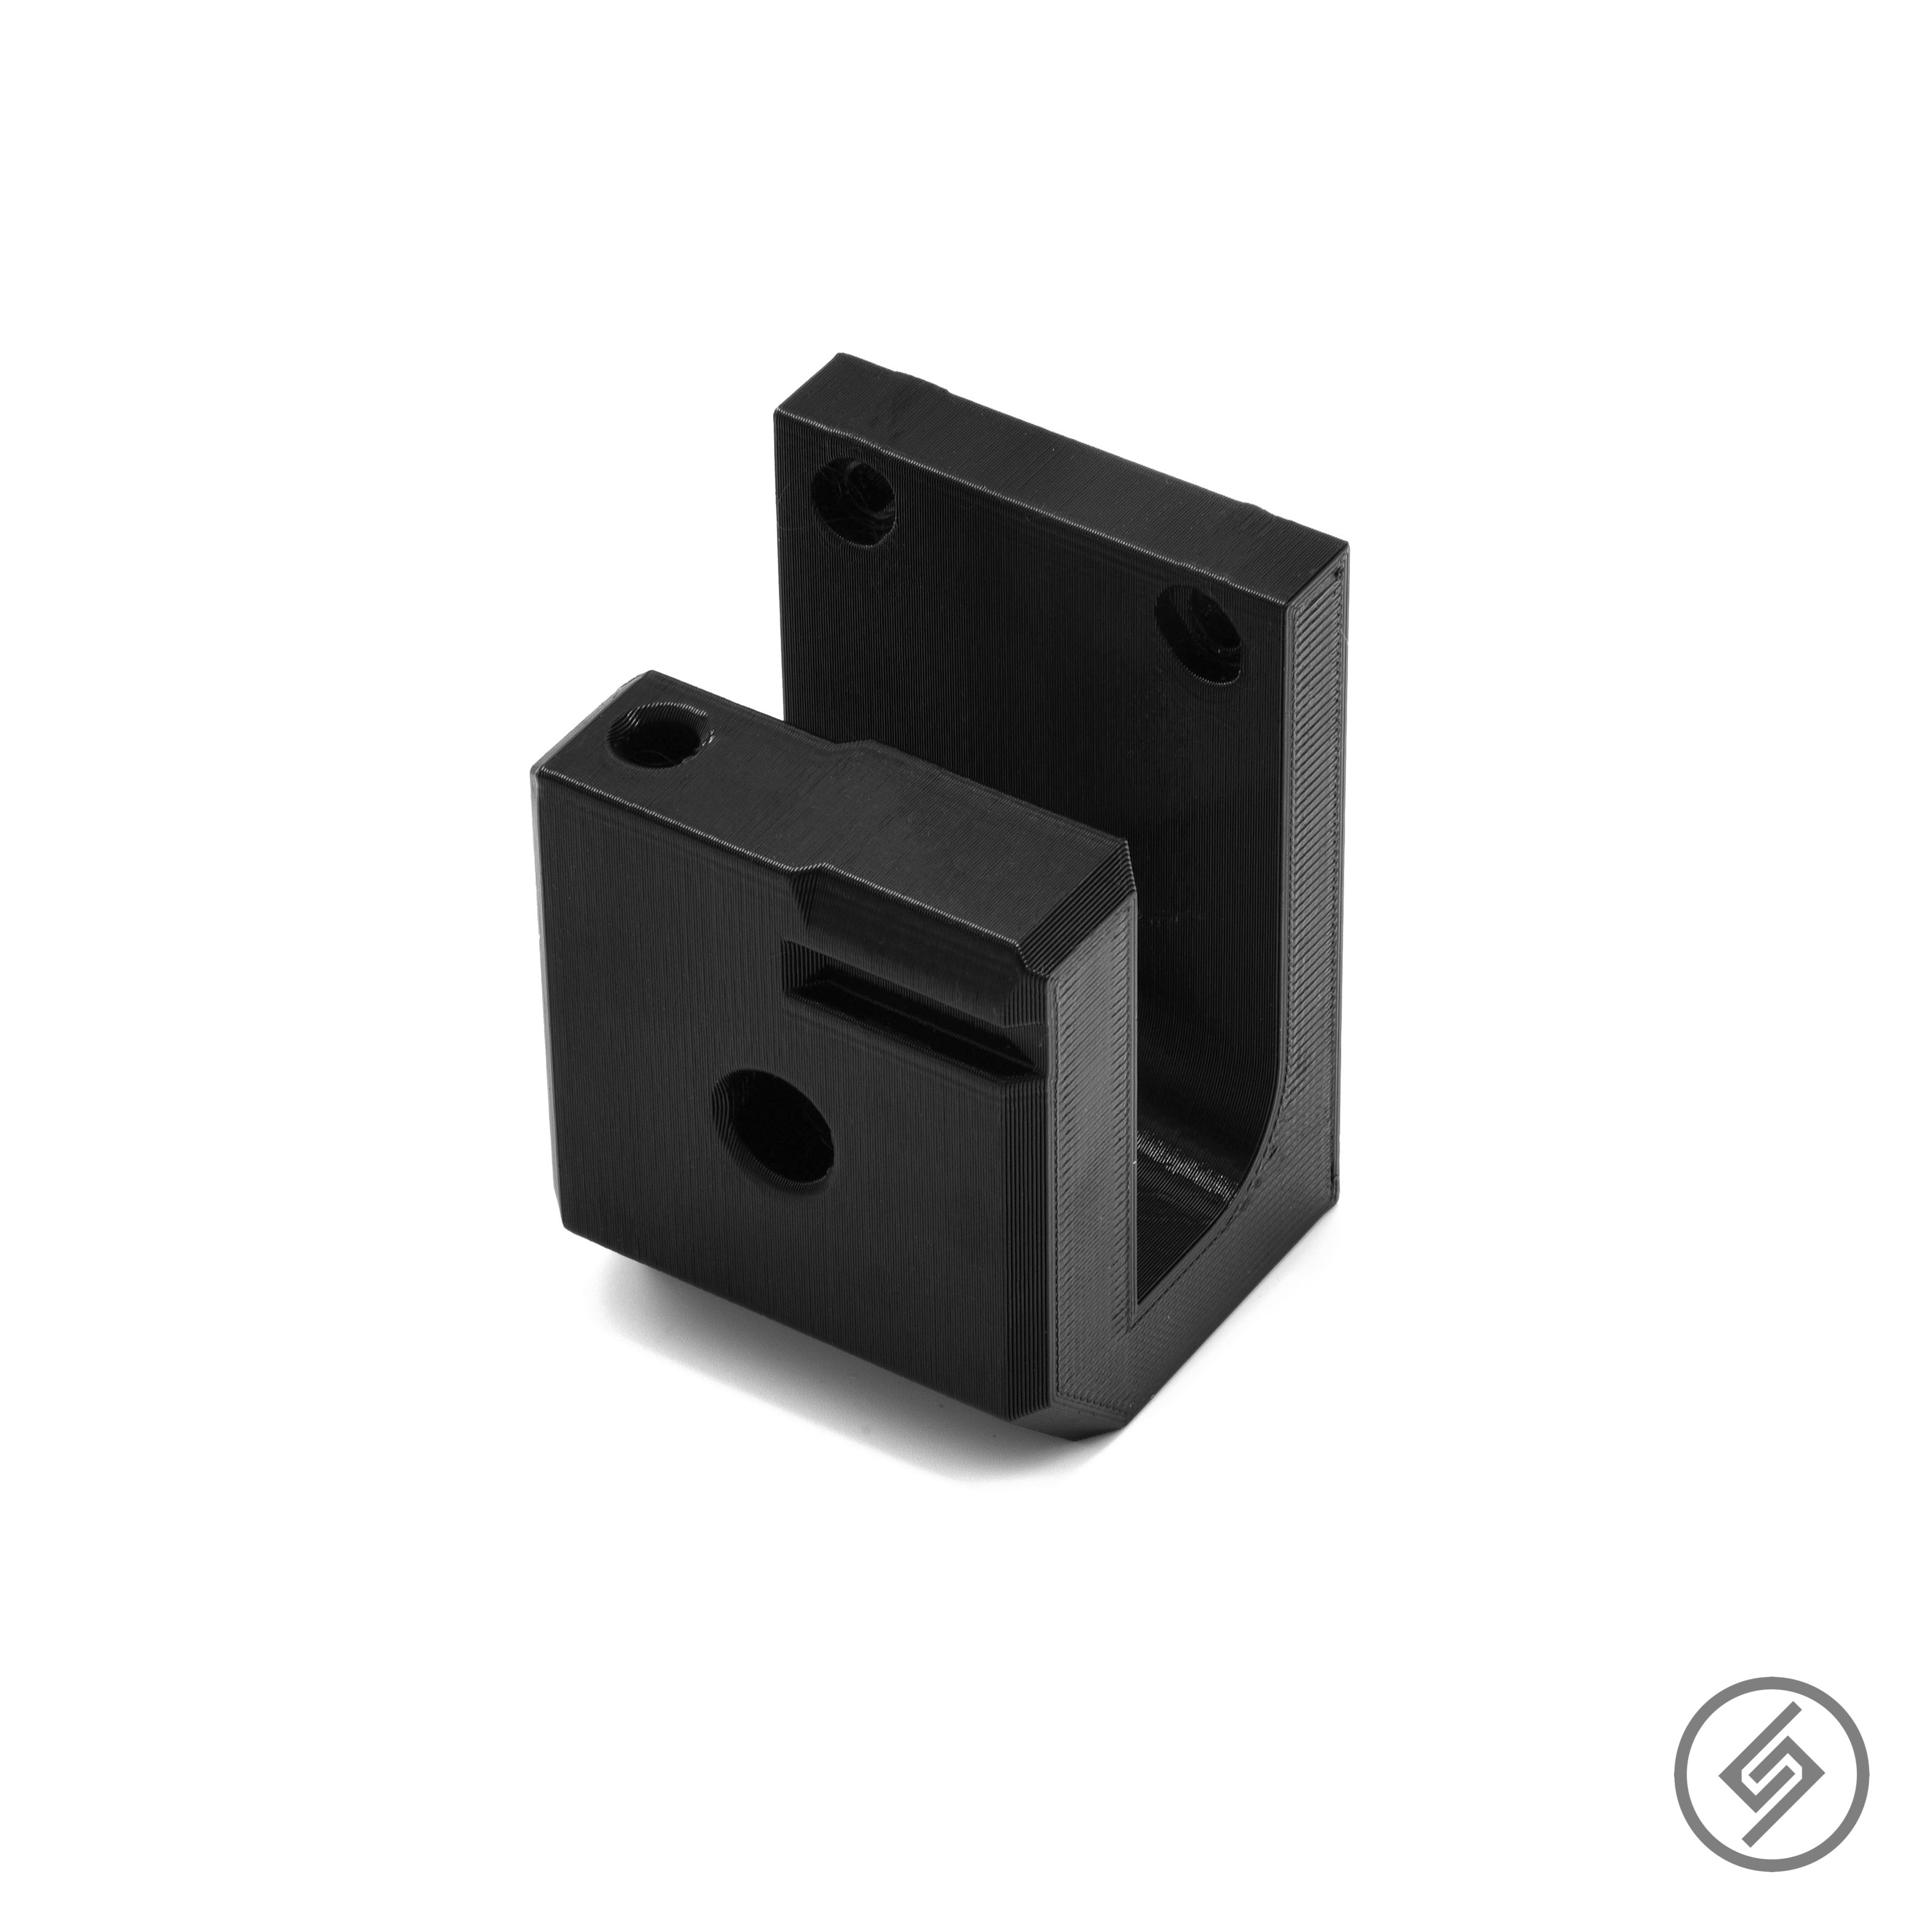 AR-15 Deep Wall Mount, Spartan Mounts Rifle Display, Product Photo